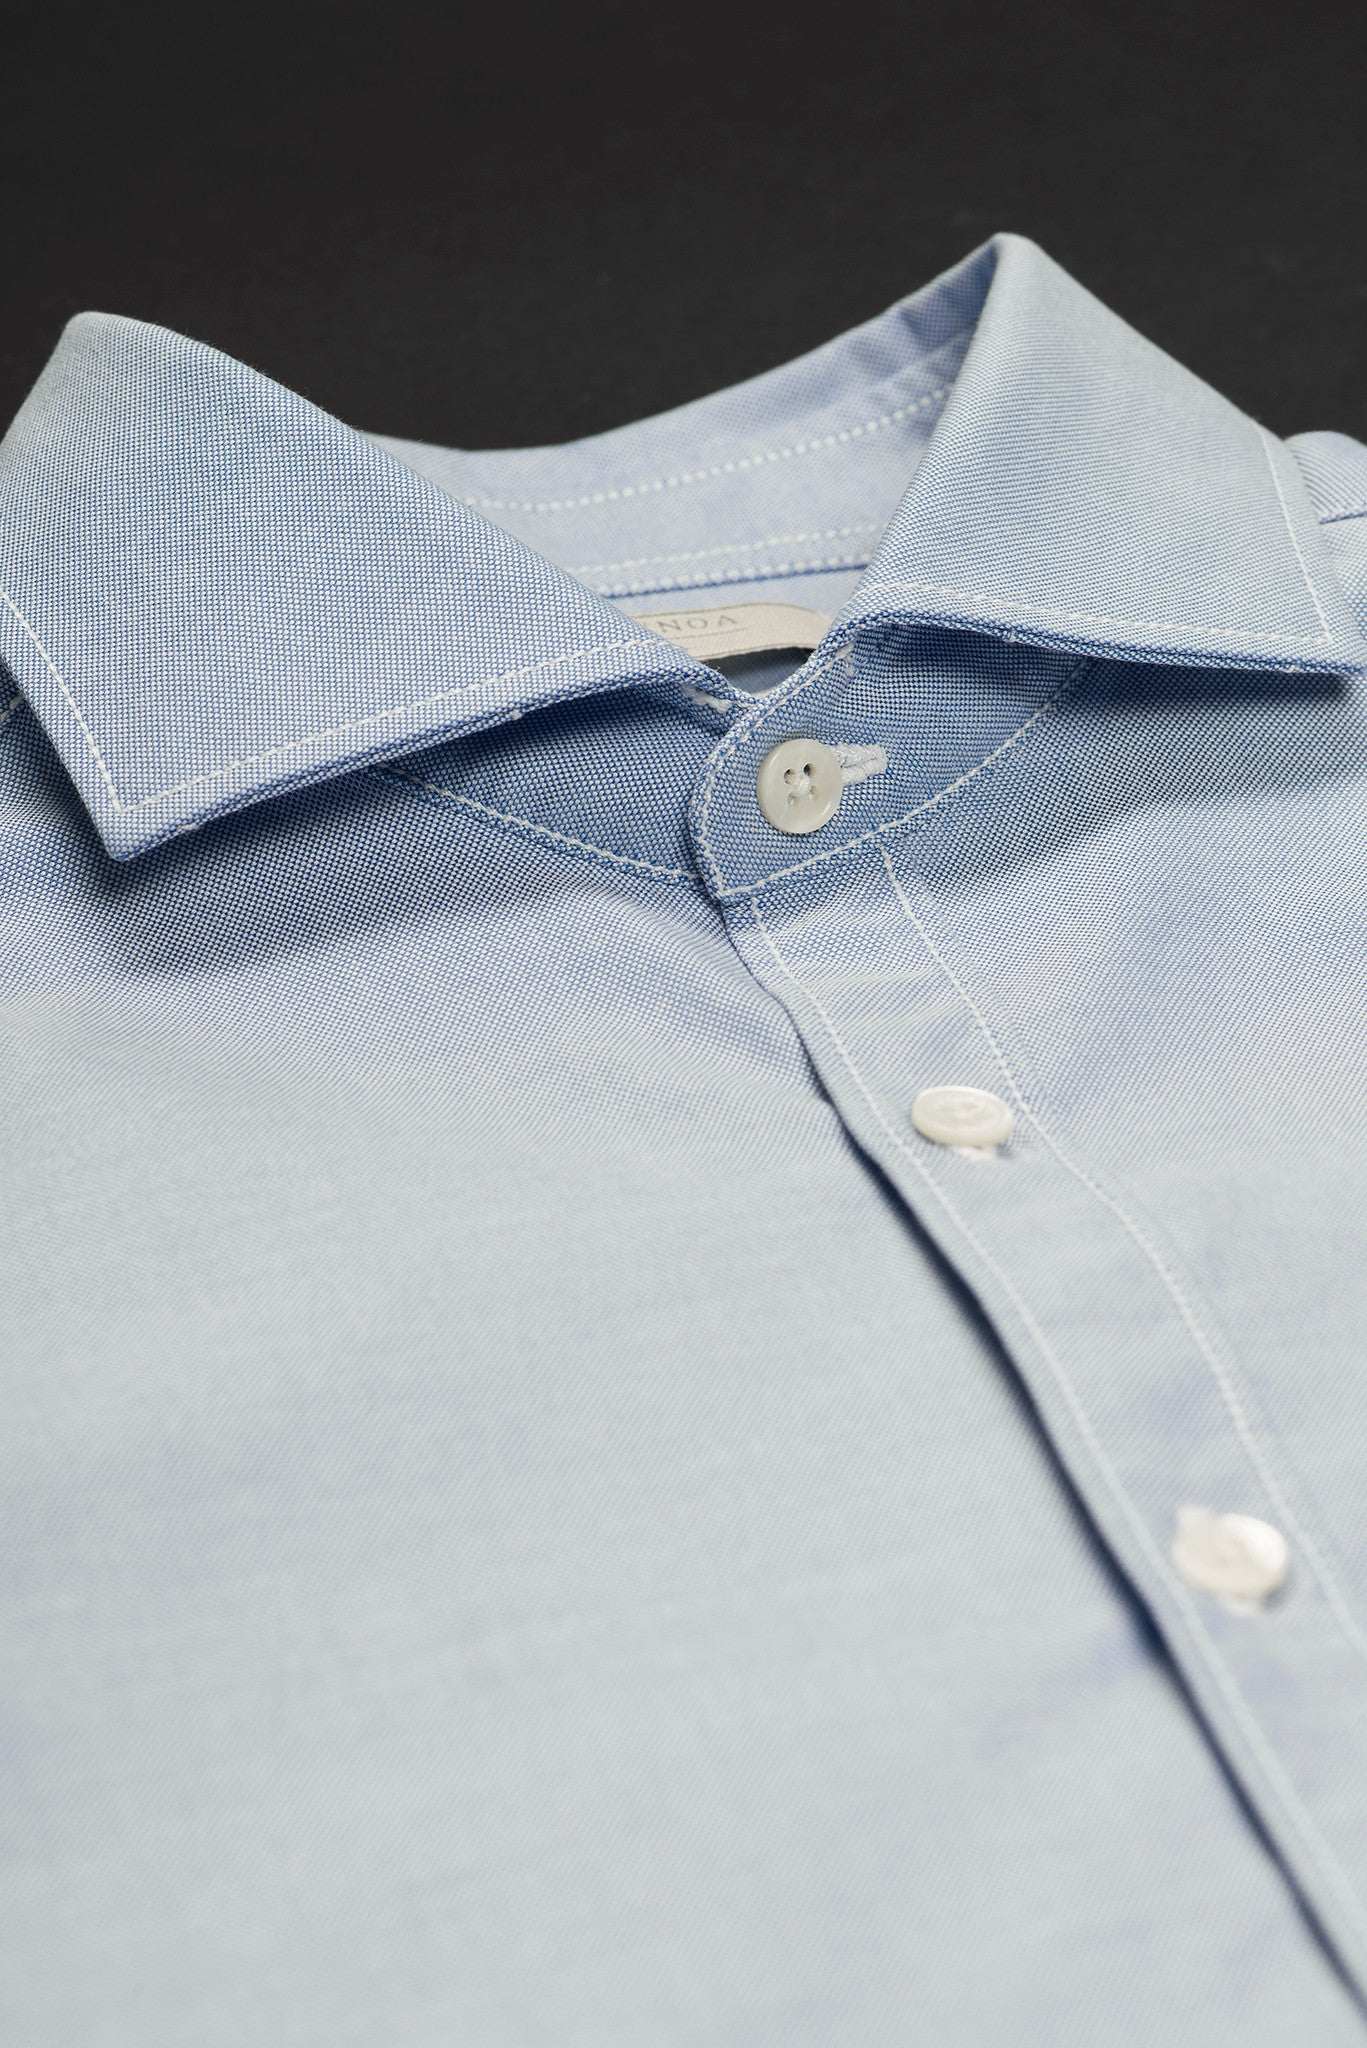 Clodoveu shirt Oxford (sky blue)